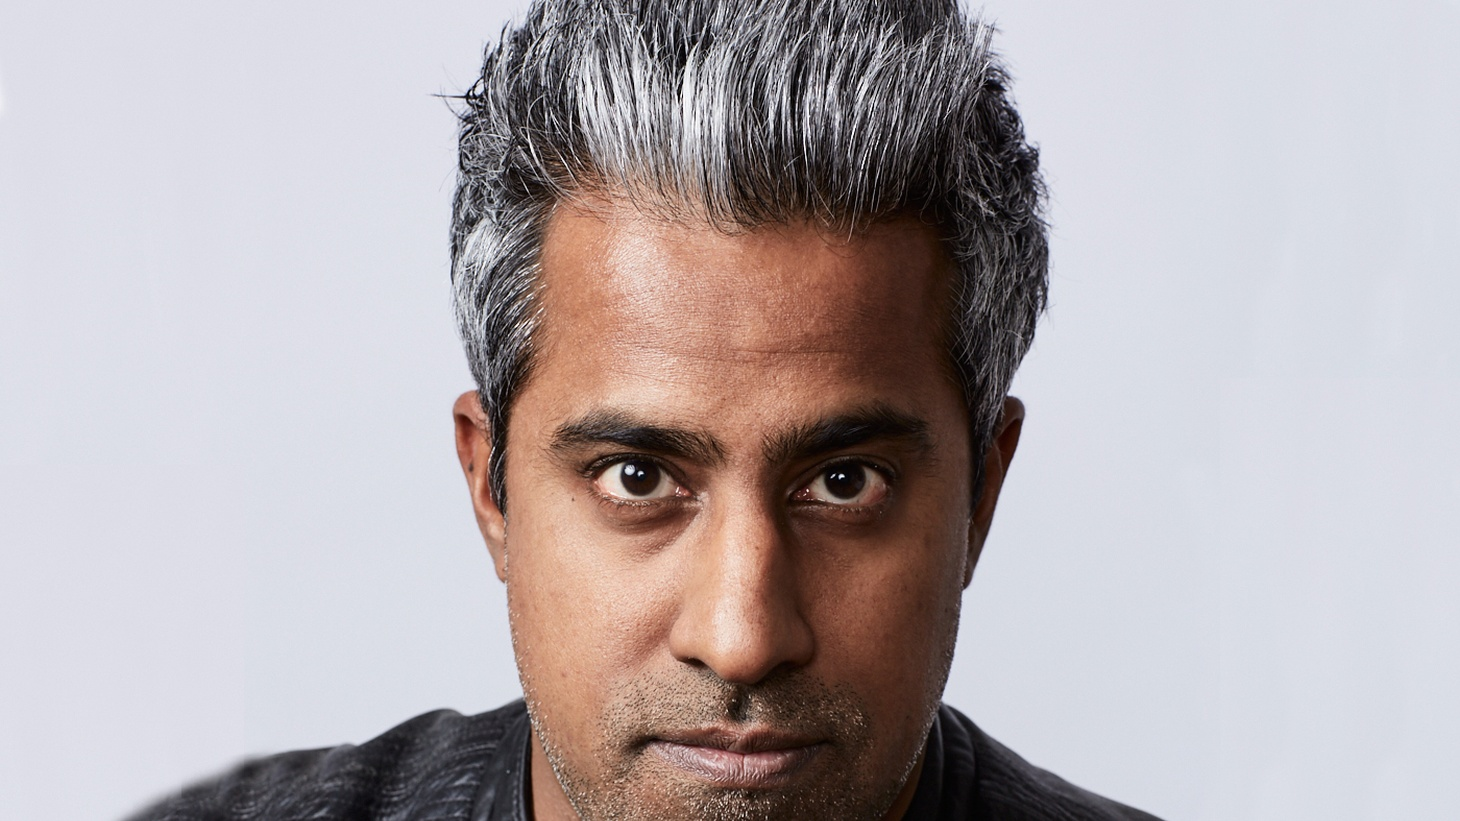 Author Anand Giridharadas discusses the distorted libertarian ideology that they use to subvert the American experiment in democracy.